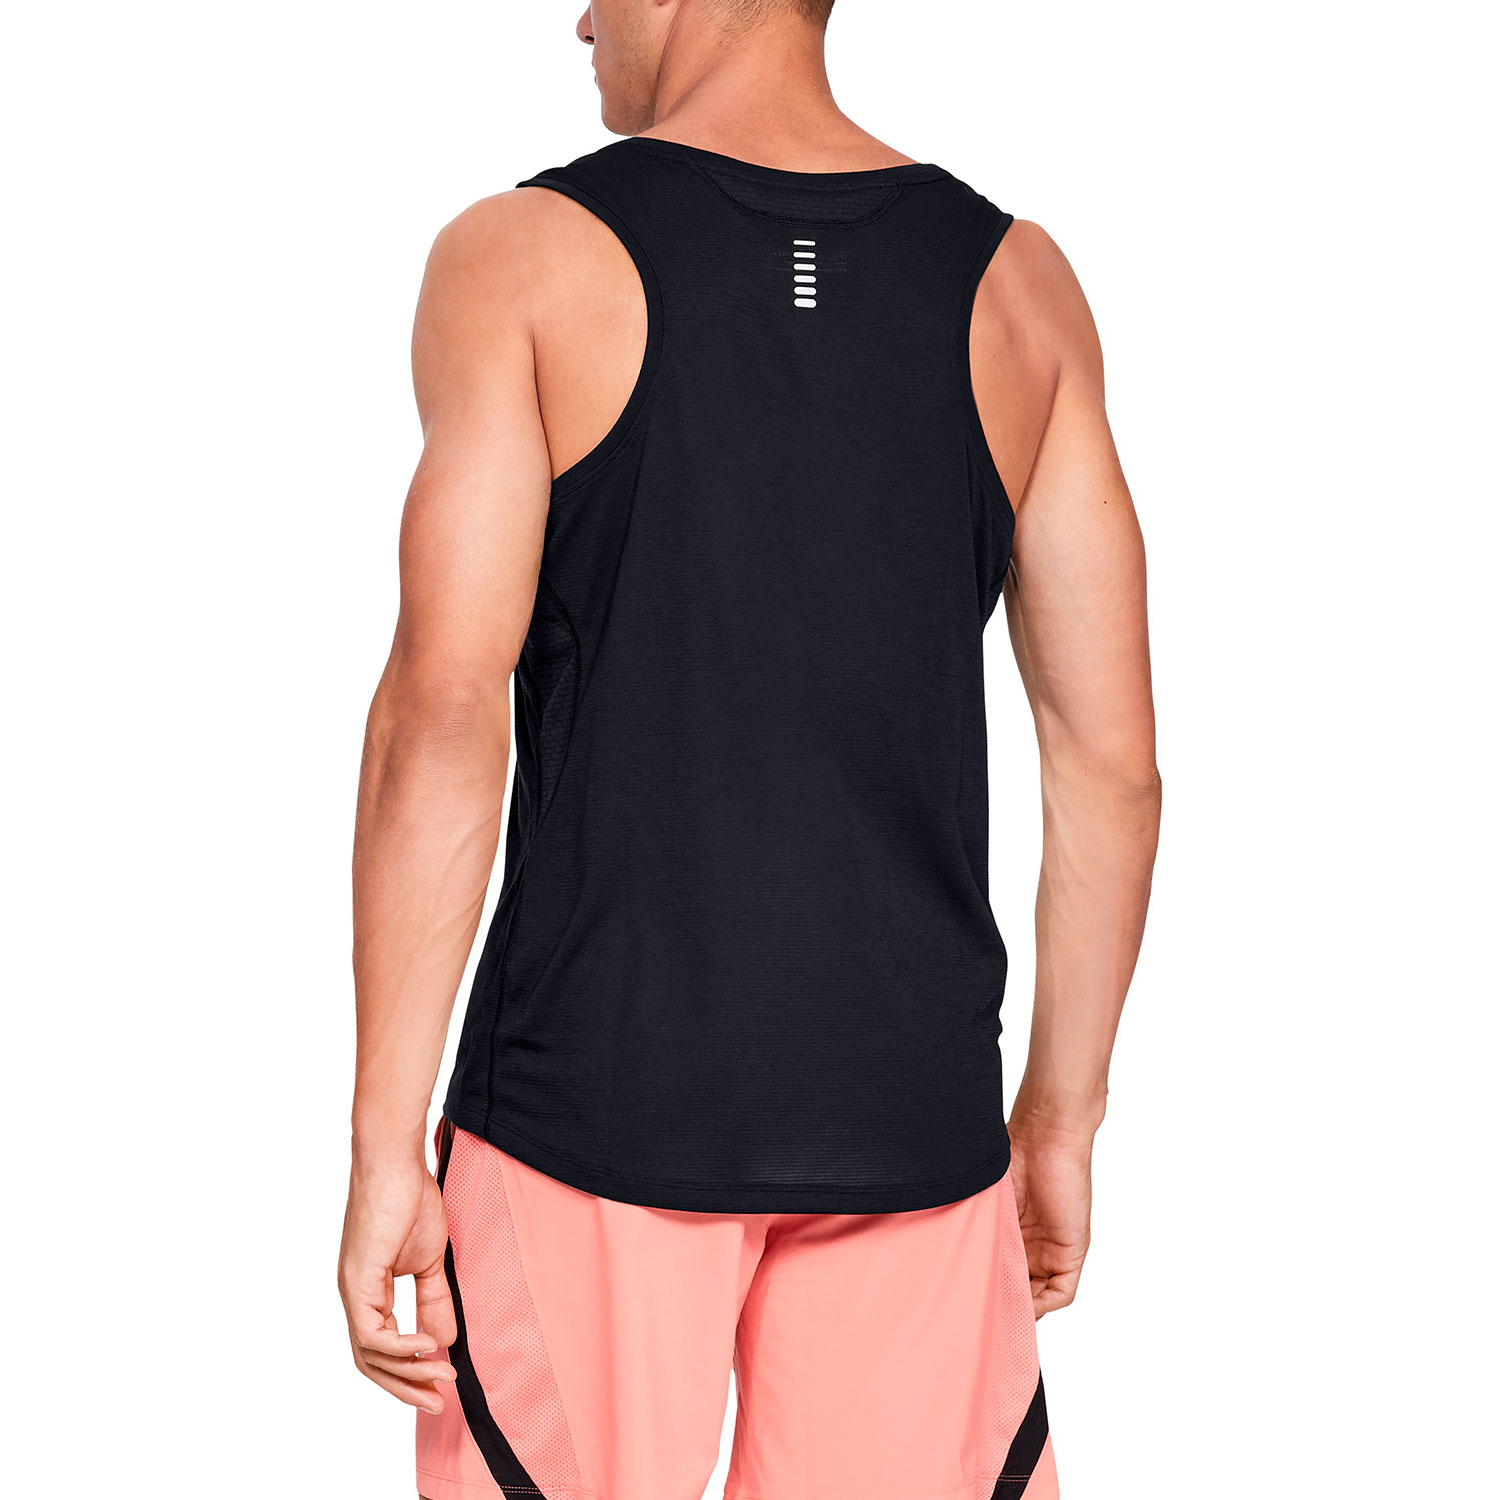 9fc613d2db4db2 Under Armour Streaker Tank - Black Under Armour Streaker Tank - Black